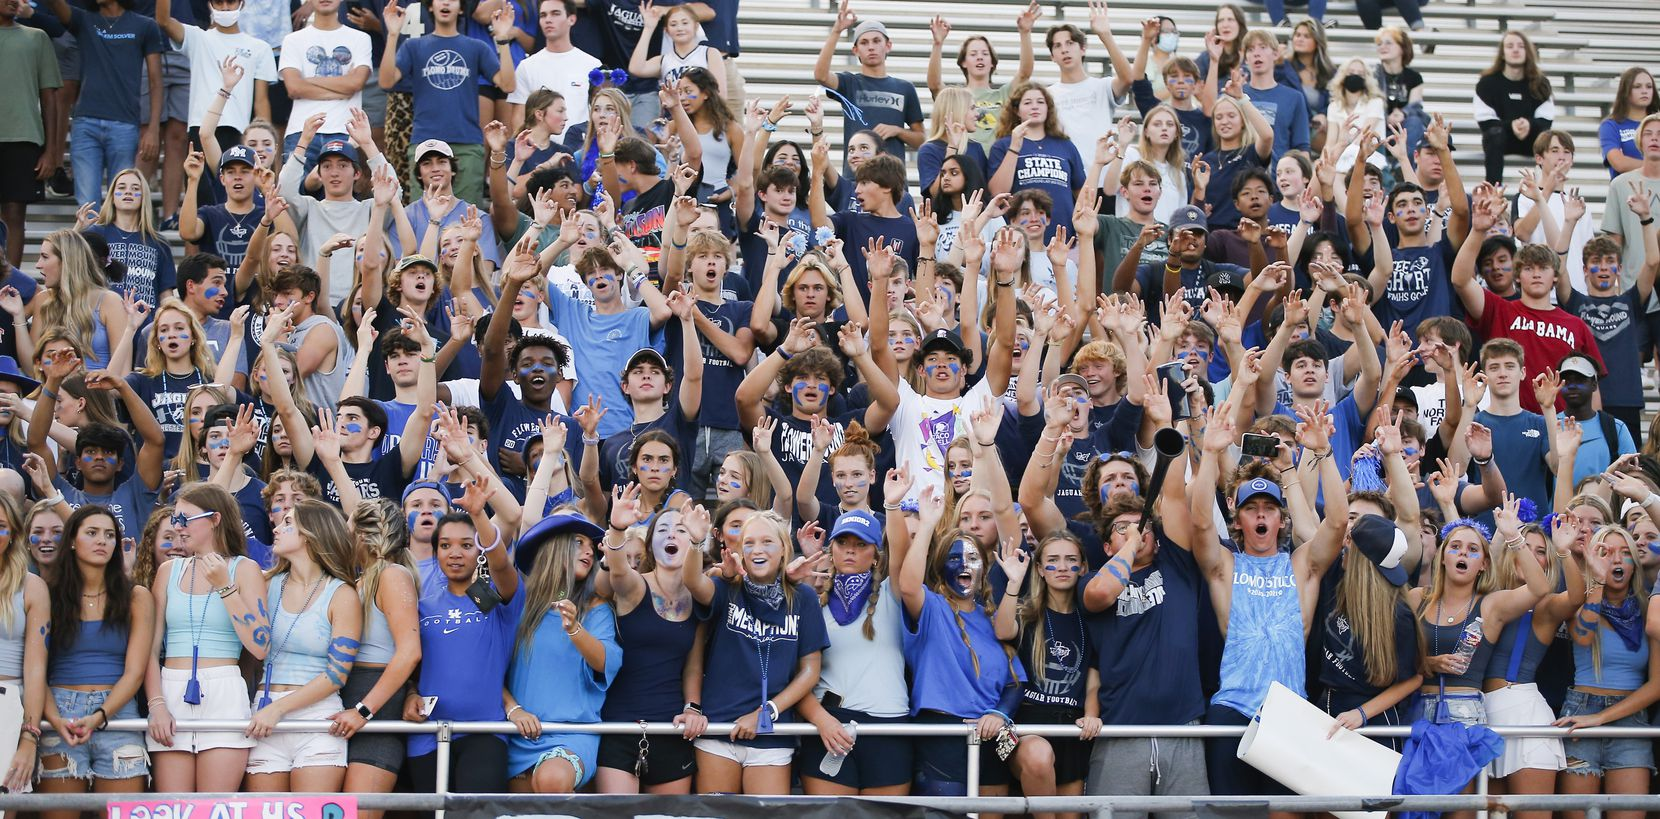 Flower Mound football fans cheer for their team during the first half of a high school football game against Mesquite at Flower Mound High School, Friday, August 27, 2021. (Brandon Wade/Special Contributor)